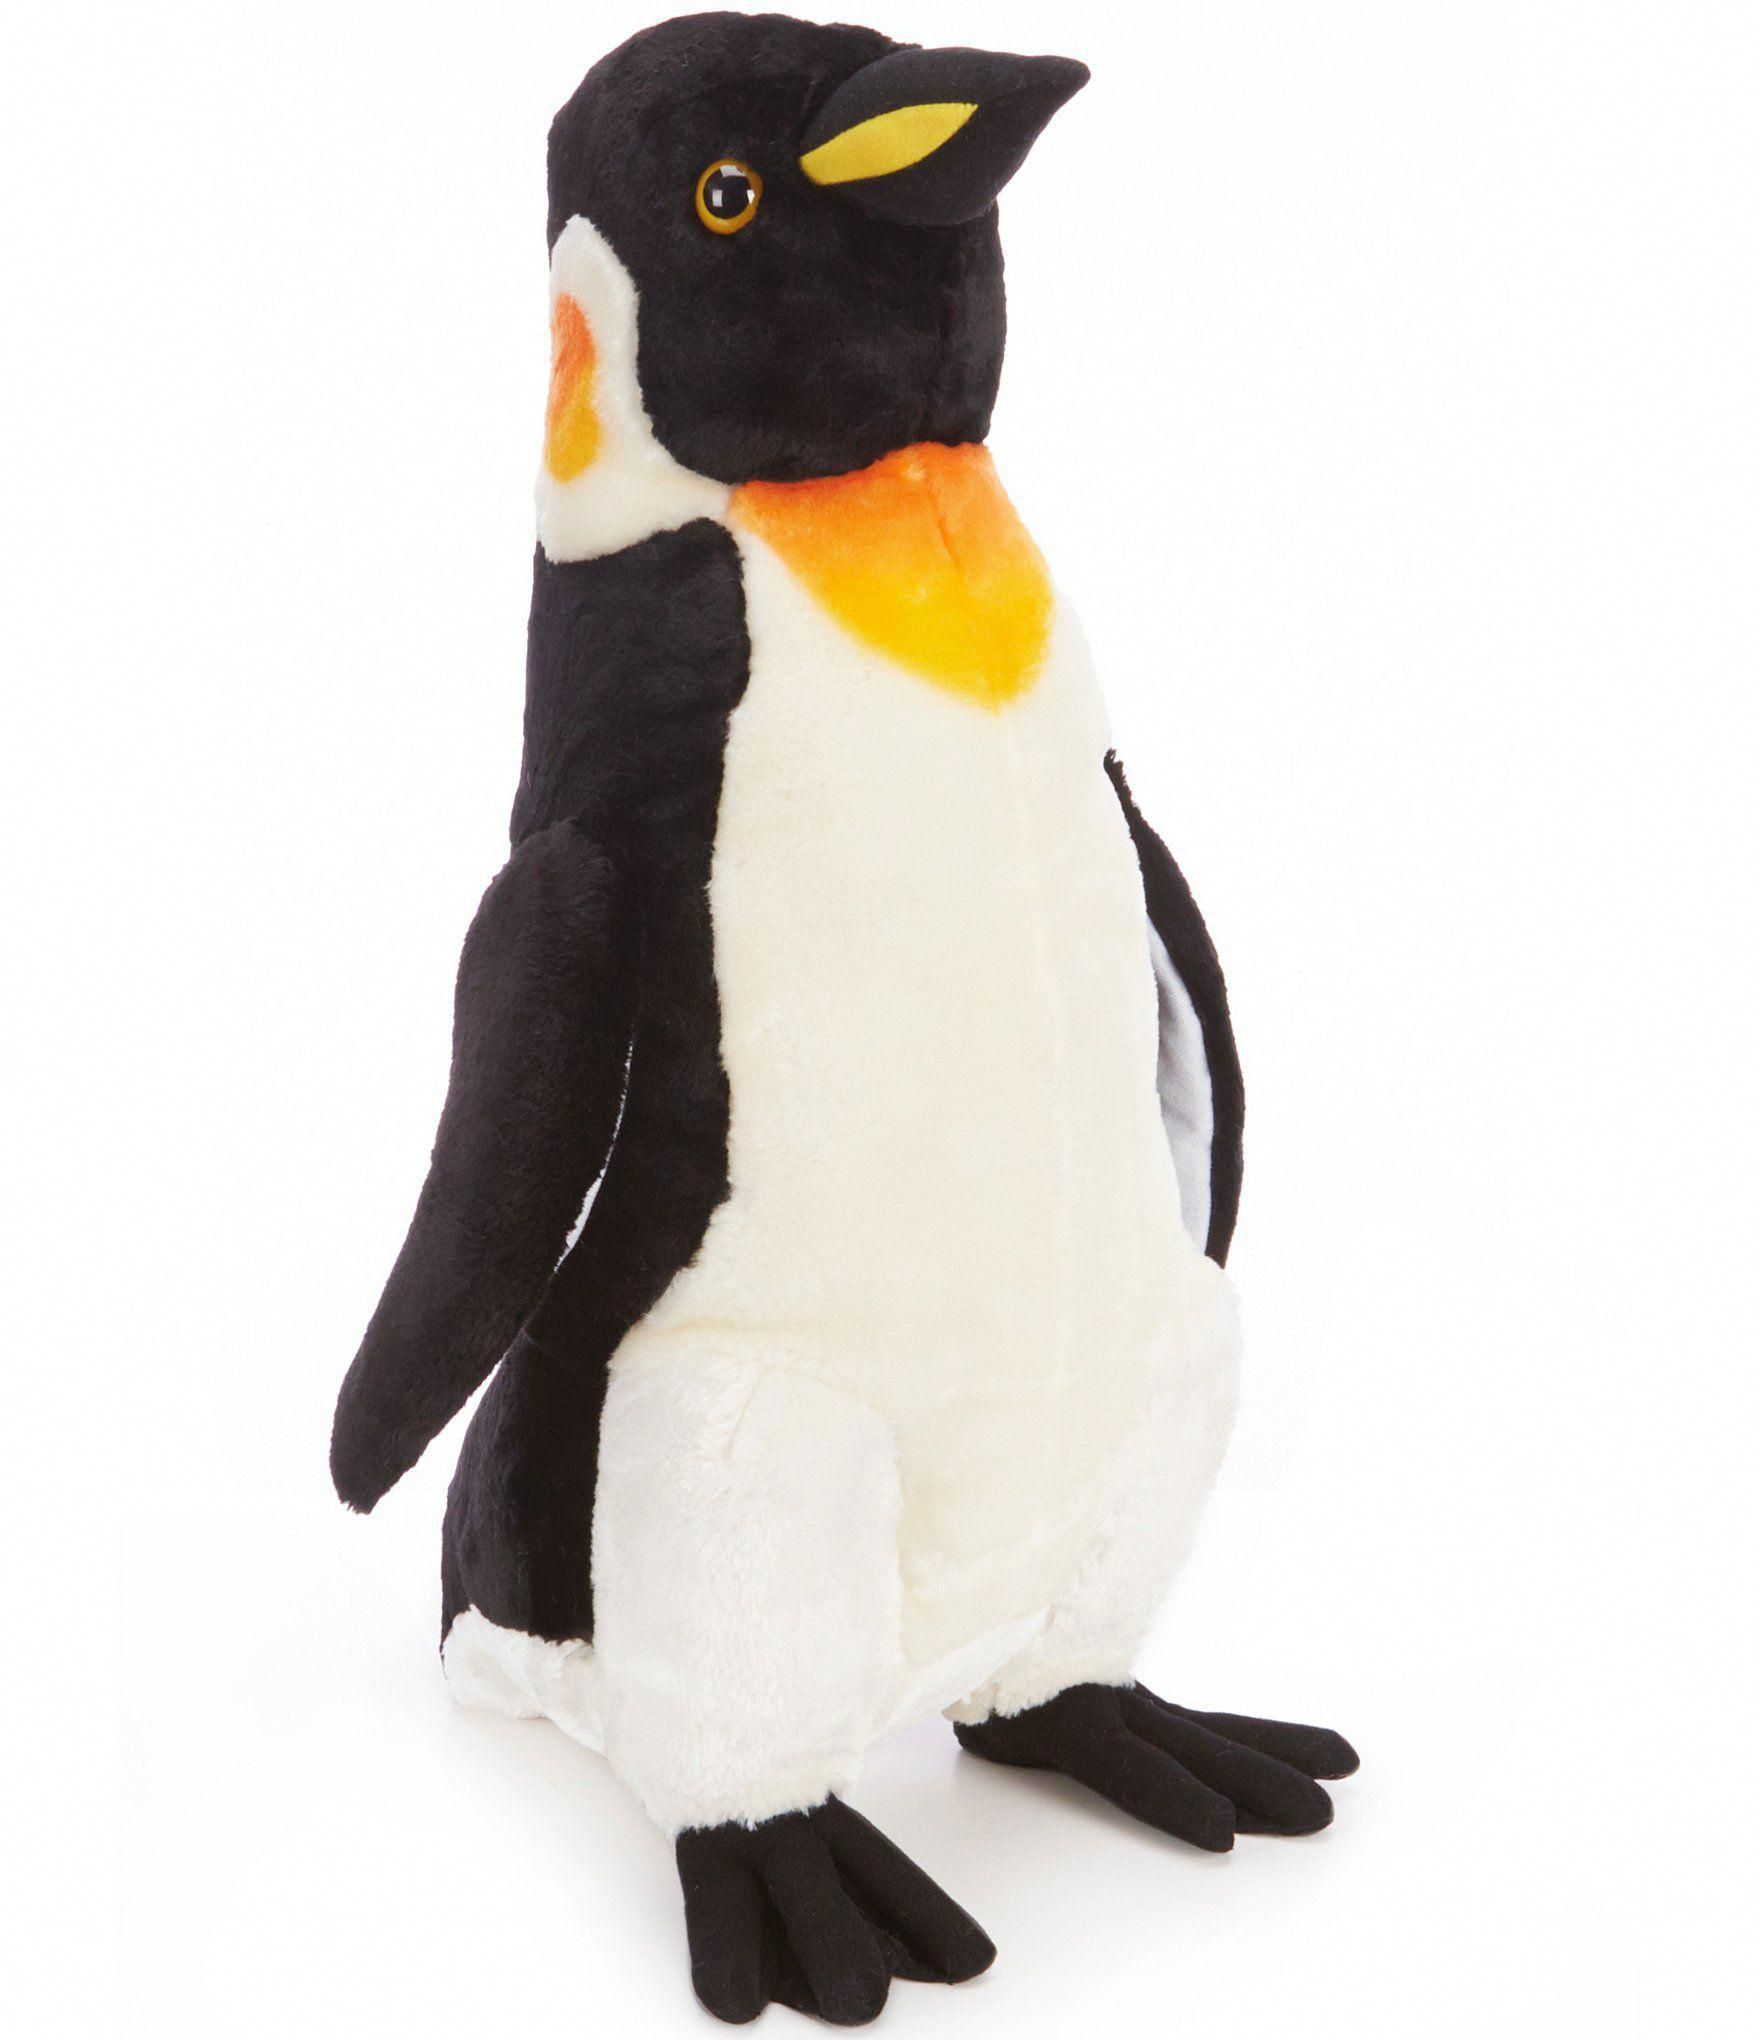 12 Finest Stuffed Animal Orca Whale in 2020 Plush